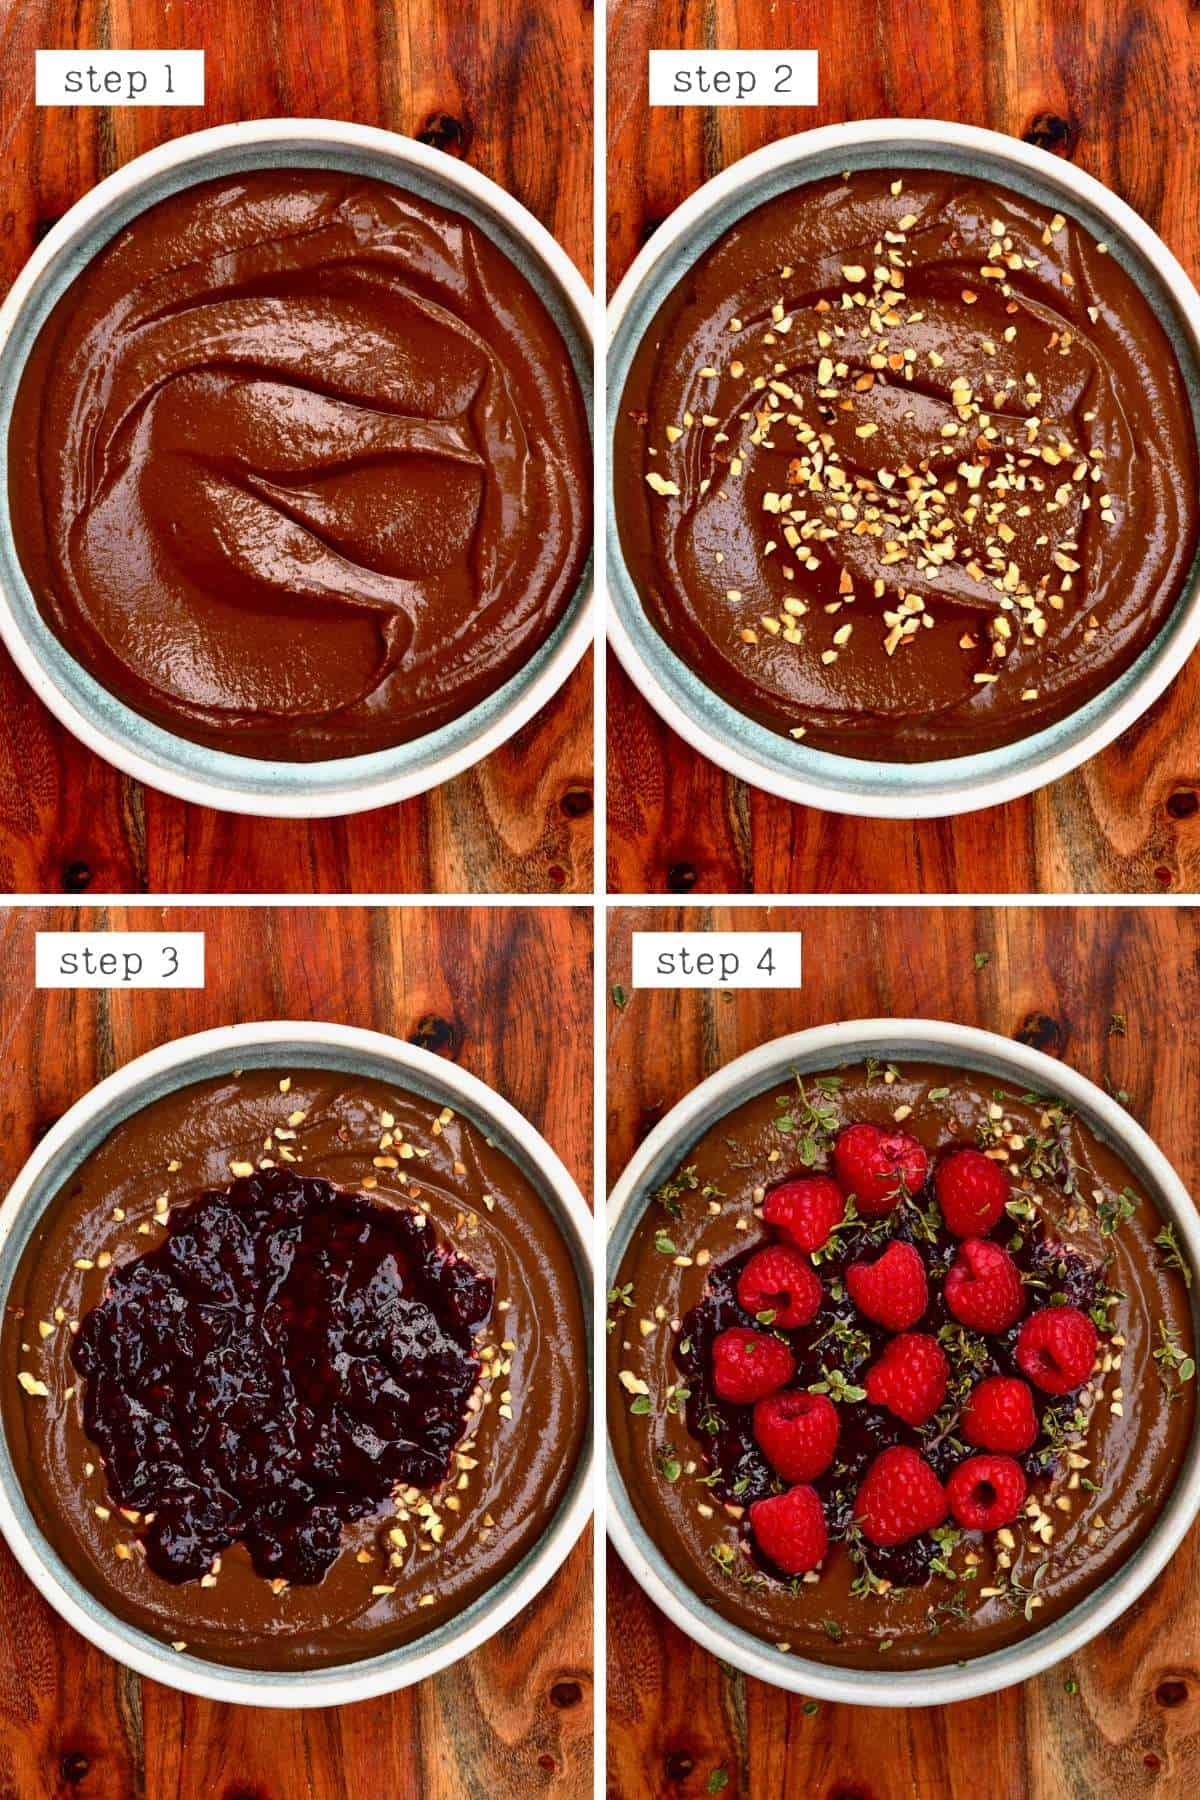 Steps for topping chocolate hummus